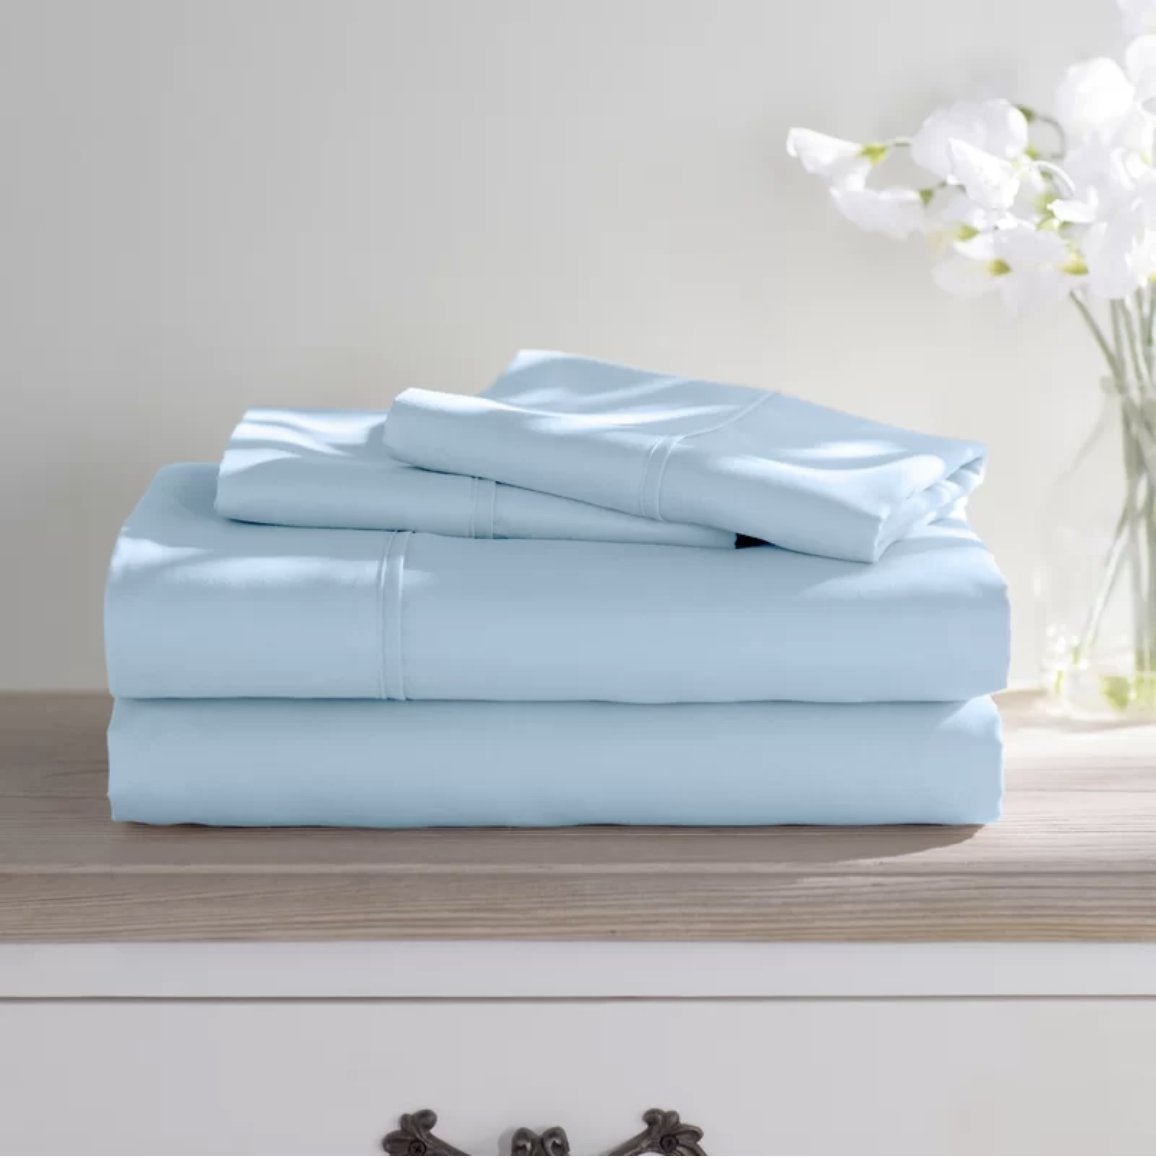 Bed Bath Fashions Premium Dorm Room 1800 Series Double Brushed Microfiber Sheets 3 Piece Sheet Set Twin Extra Long XL - Ultra Soft College Bedding Hypoallergenic and Wrinkle Free (Aqua)